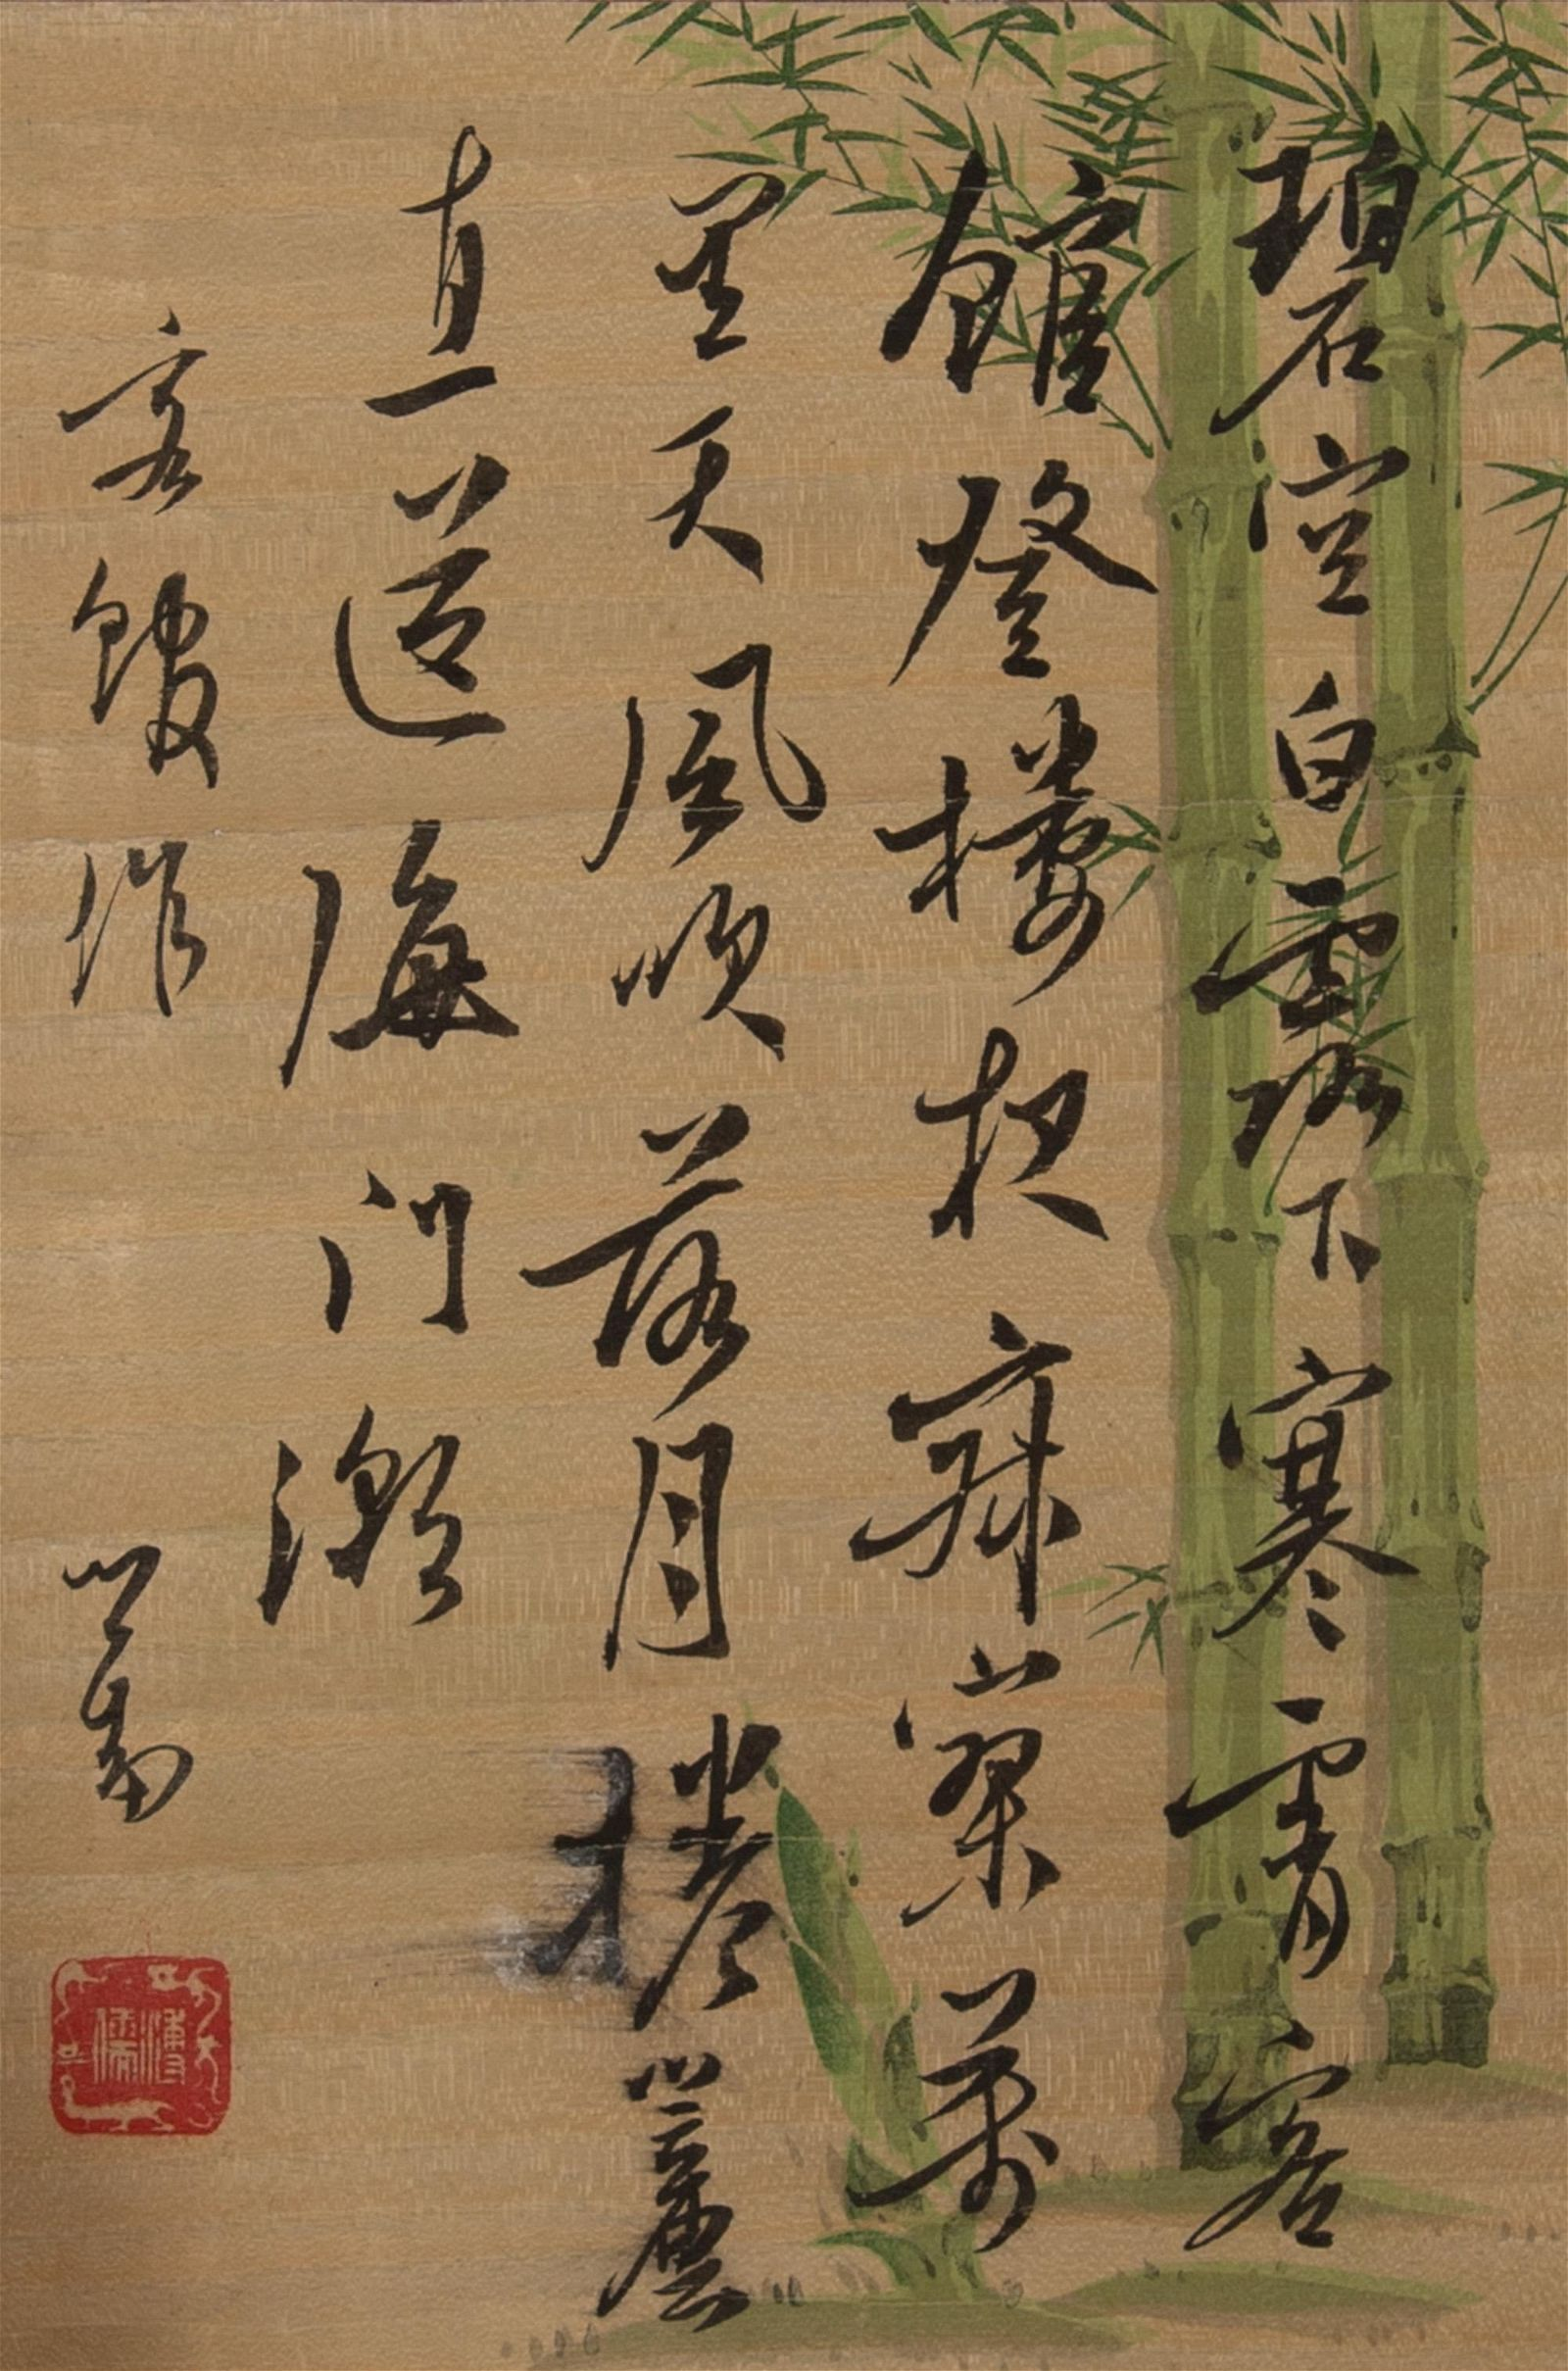 Chinese Calligraphy on Bamboo Paper by Pu Ru